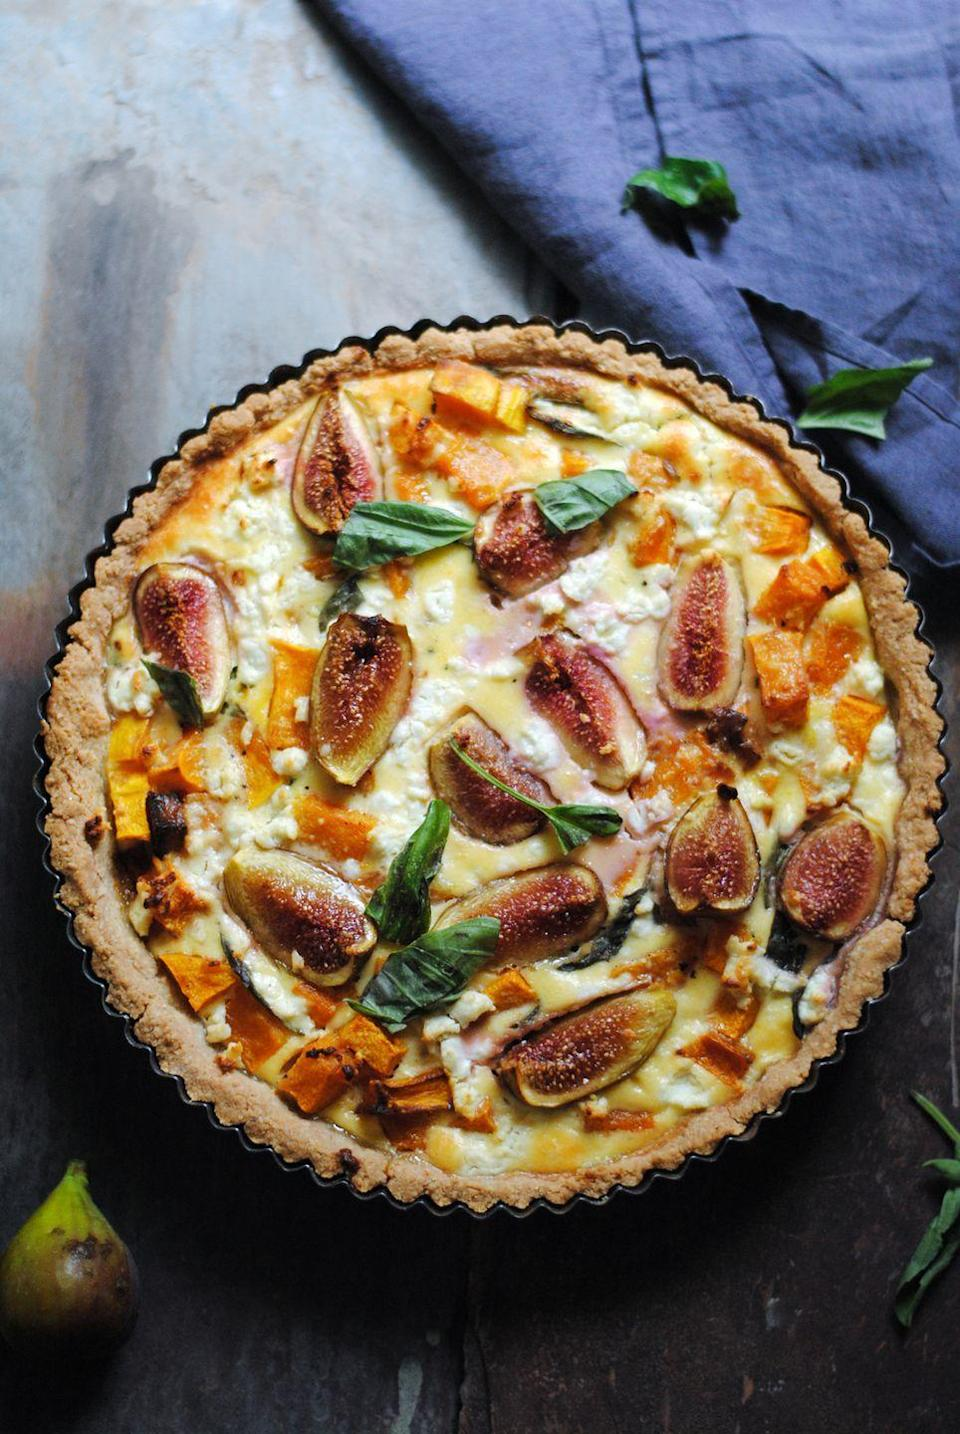 """<p>This mouthwatering blend of sweet and savory is baked with eggs, fig, pumpkin, and ricotta and goat cheeses. We seriously recommend it. </p><p><strong>Get the recipe at <a href=""""https://georgeats.com/recipes/fig-ricotta-basil-and-cheese-tarts-two-ways/"""" rel=""""nofollow noopener"""" target=""""_blank"""" data-ylk=""""slk:George Eats"""" class=""""link rapid-noclick-resp"""">George Eats</a></strong>. </p>"""